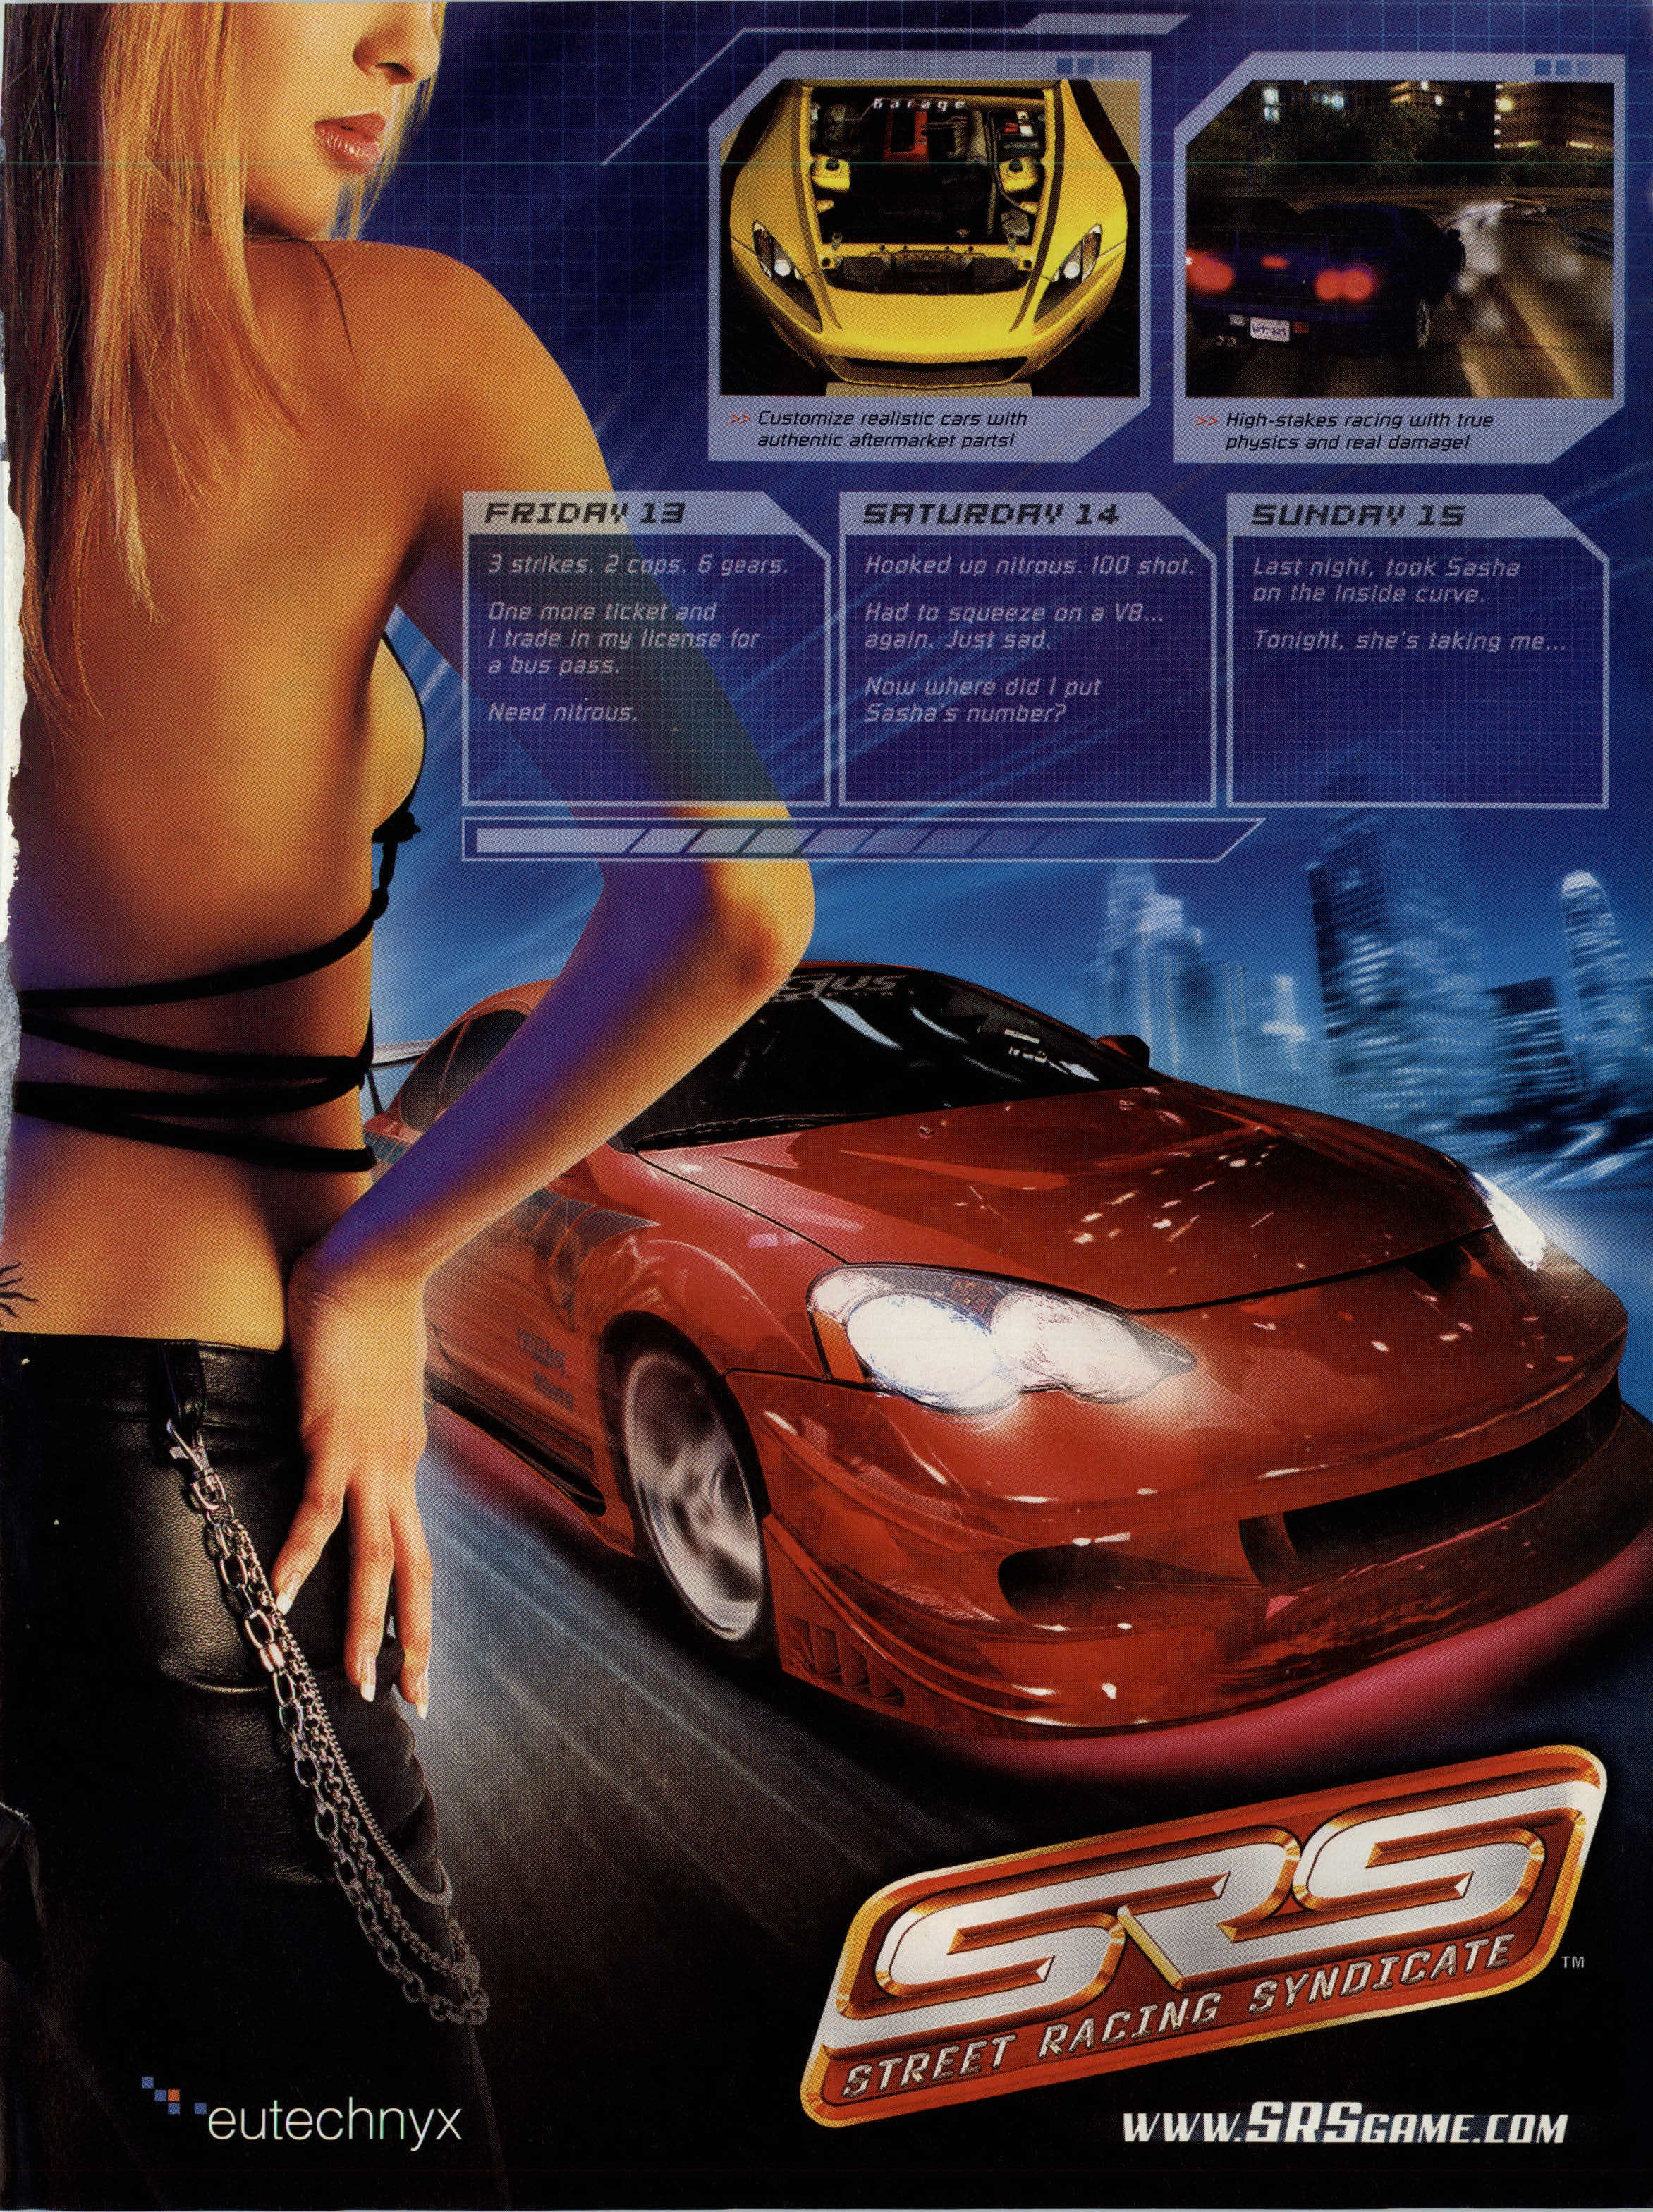 Street Racing Syndicate hook up siti di incontri PayPal